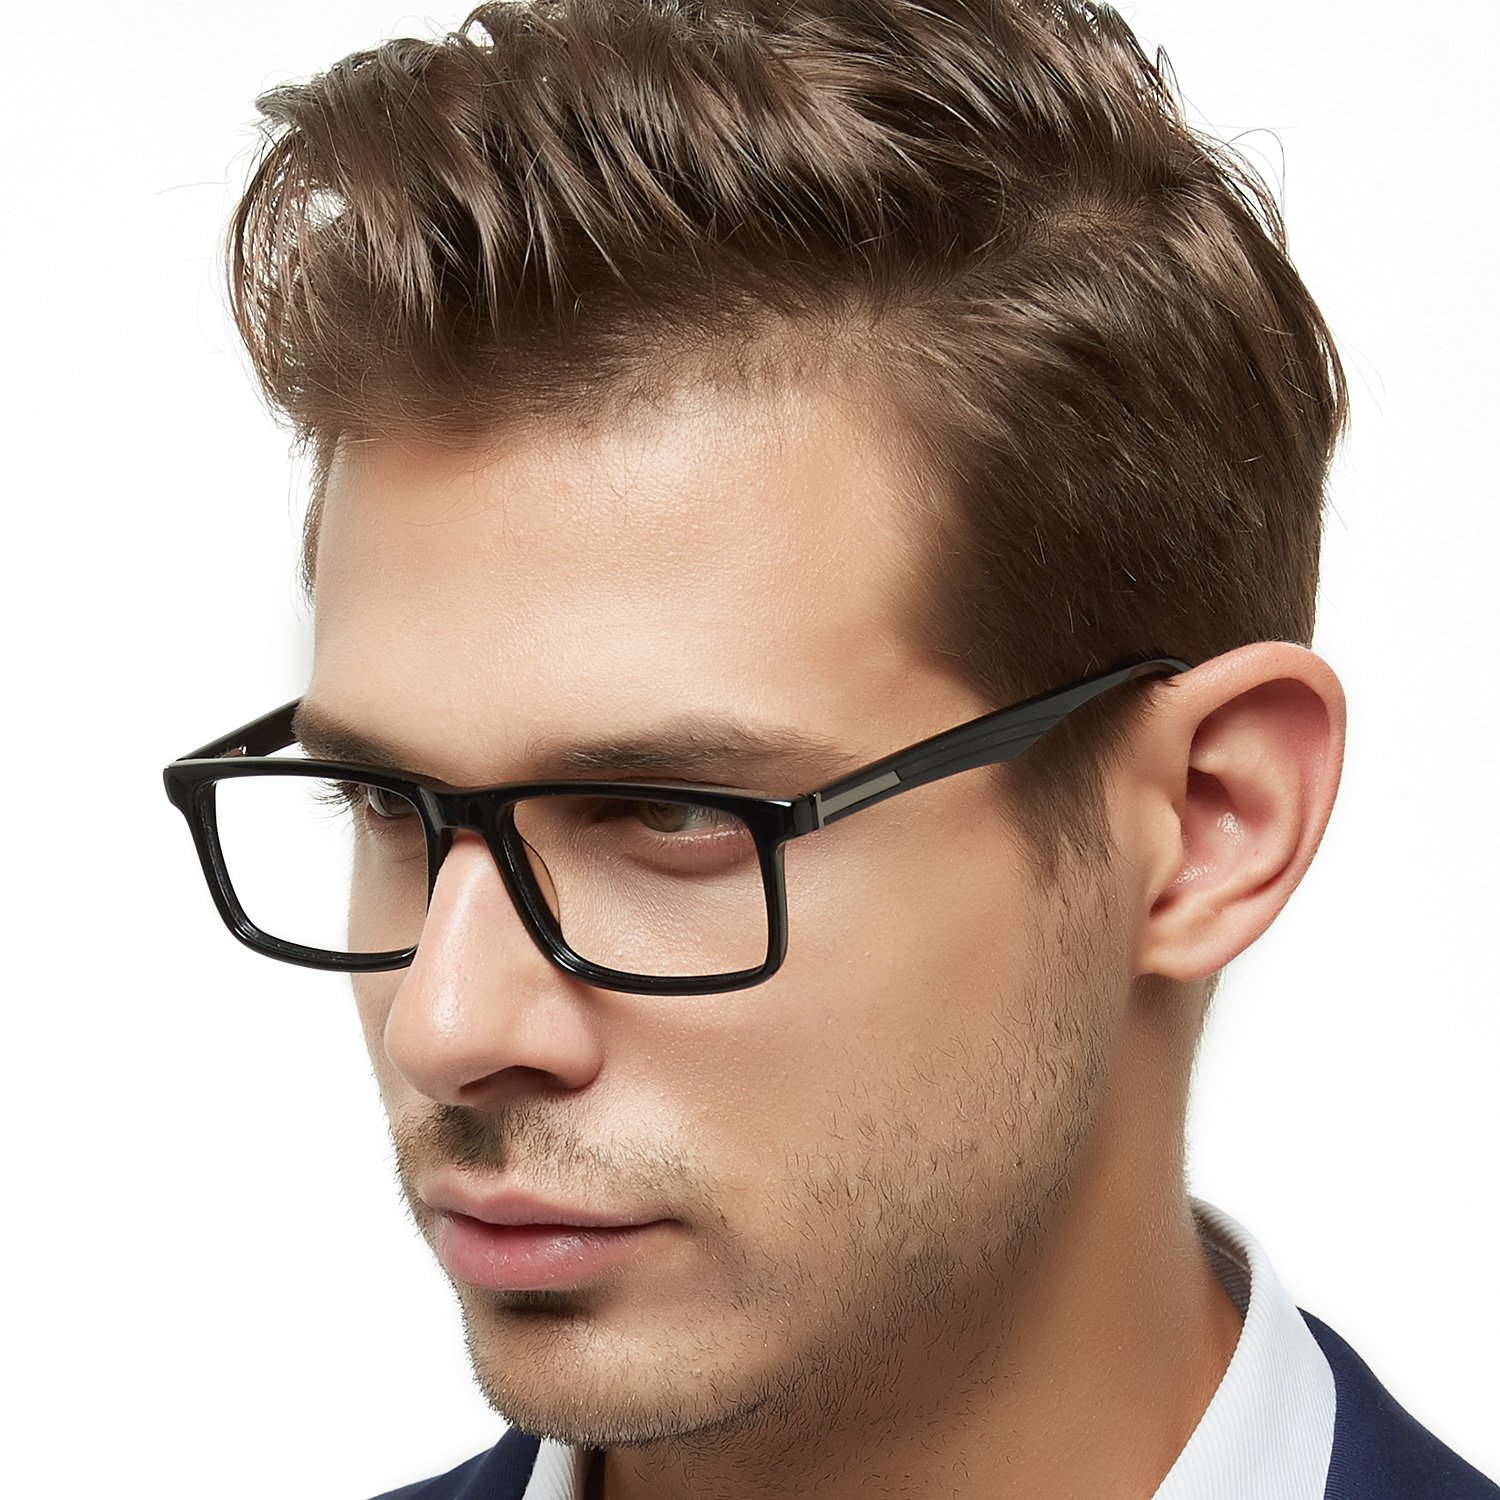 OCCI CHIARI Mens Rectangle Fashion Stylish Acetate Eyewear Frame With Clear Lens 51mm (Black)